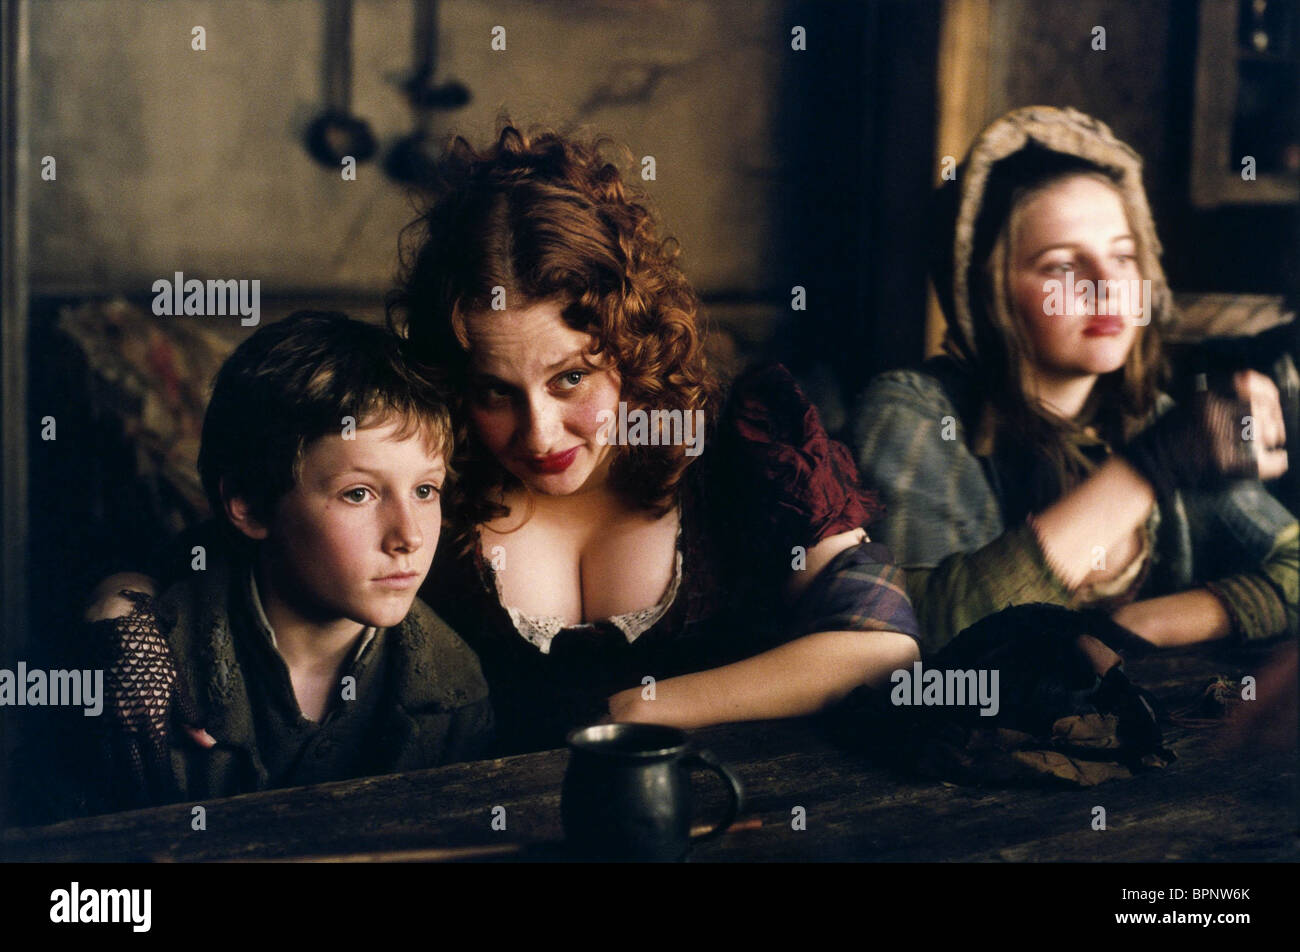 oliver twist nancy stock photos oliver twist nancy stock images barney clark leanne rowe oliver twist 2005 stock image